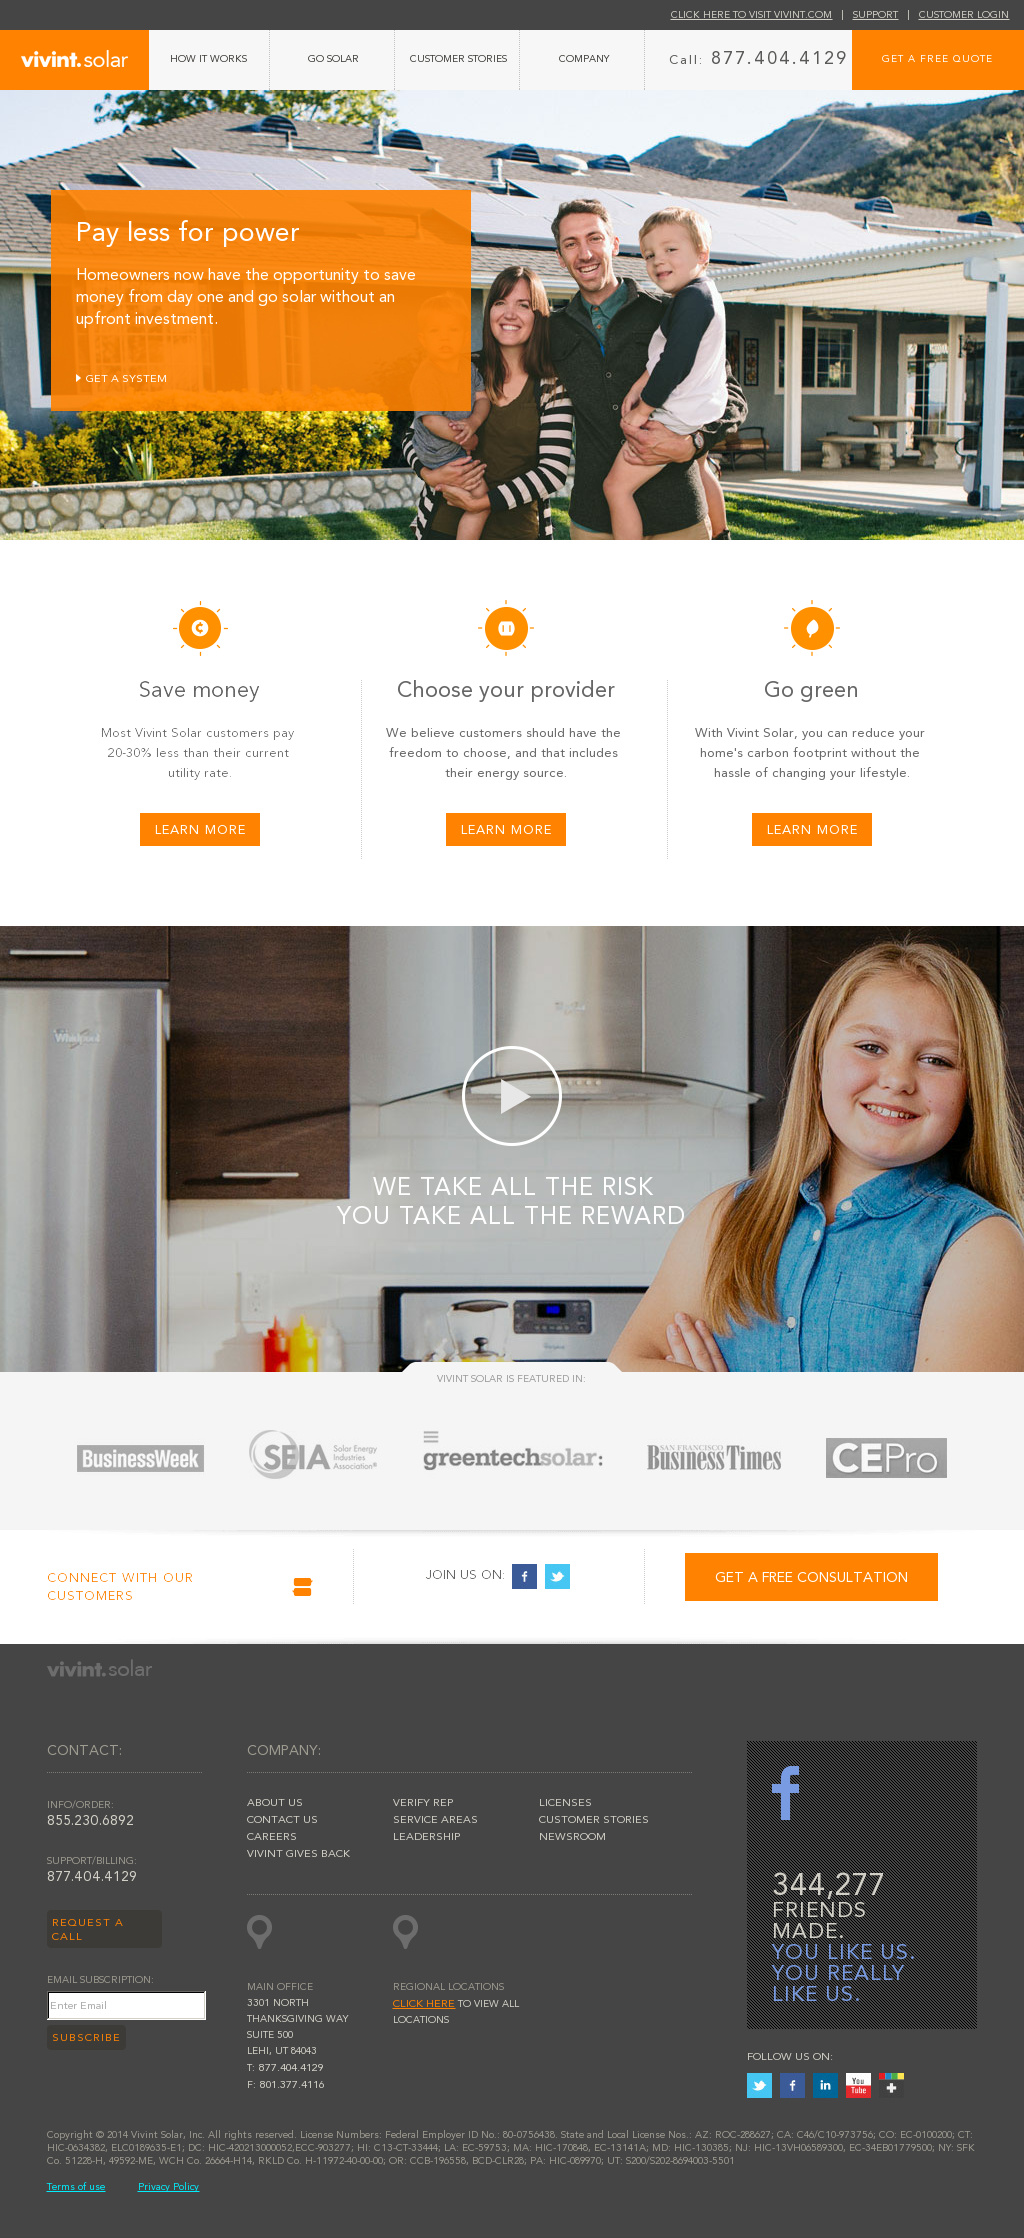 how to delete history on vivint